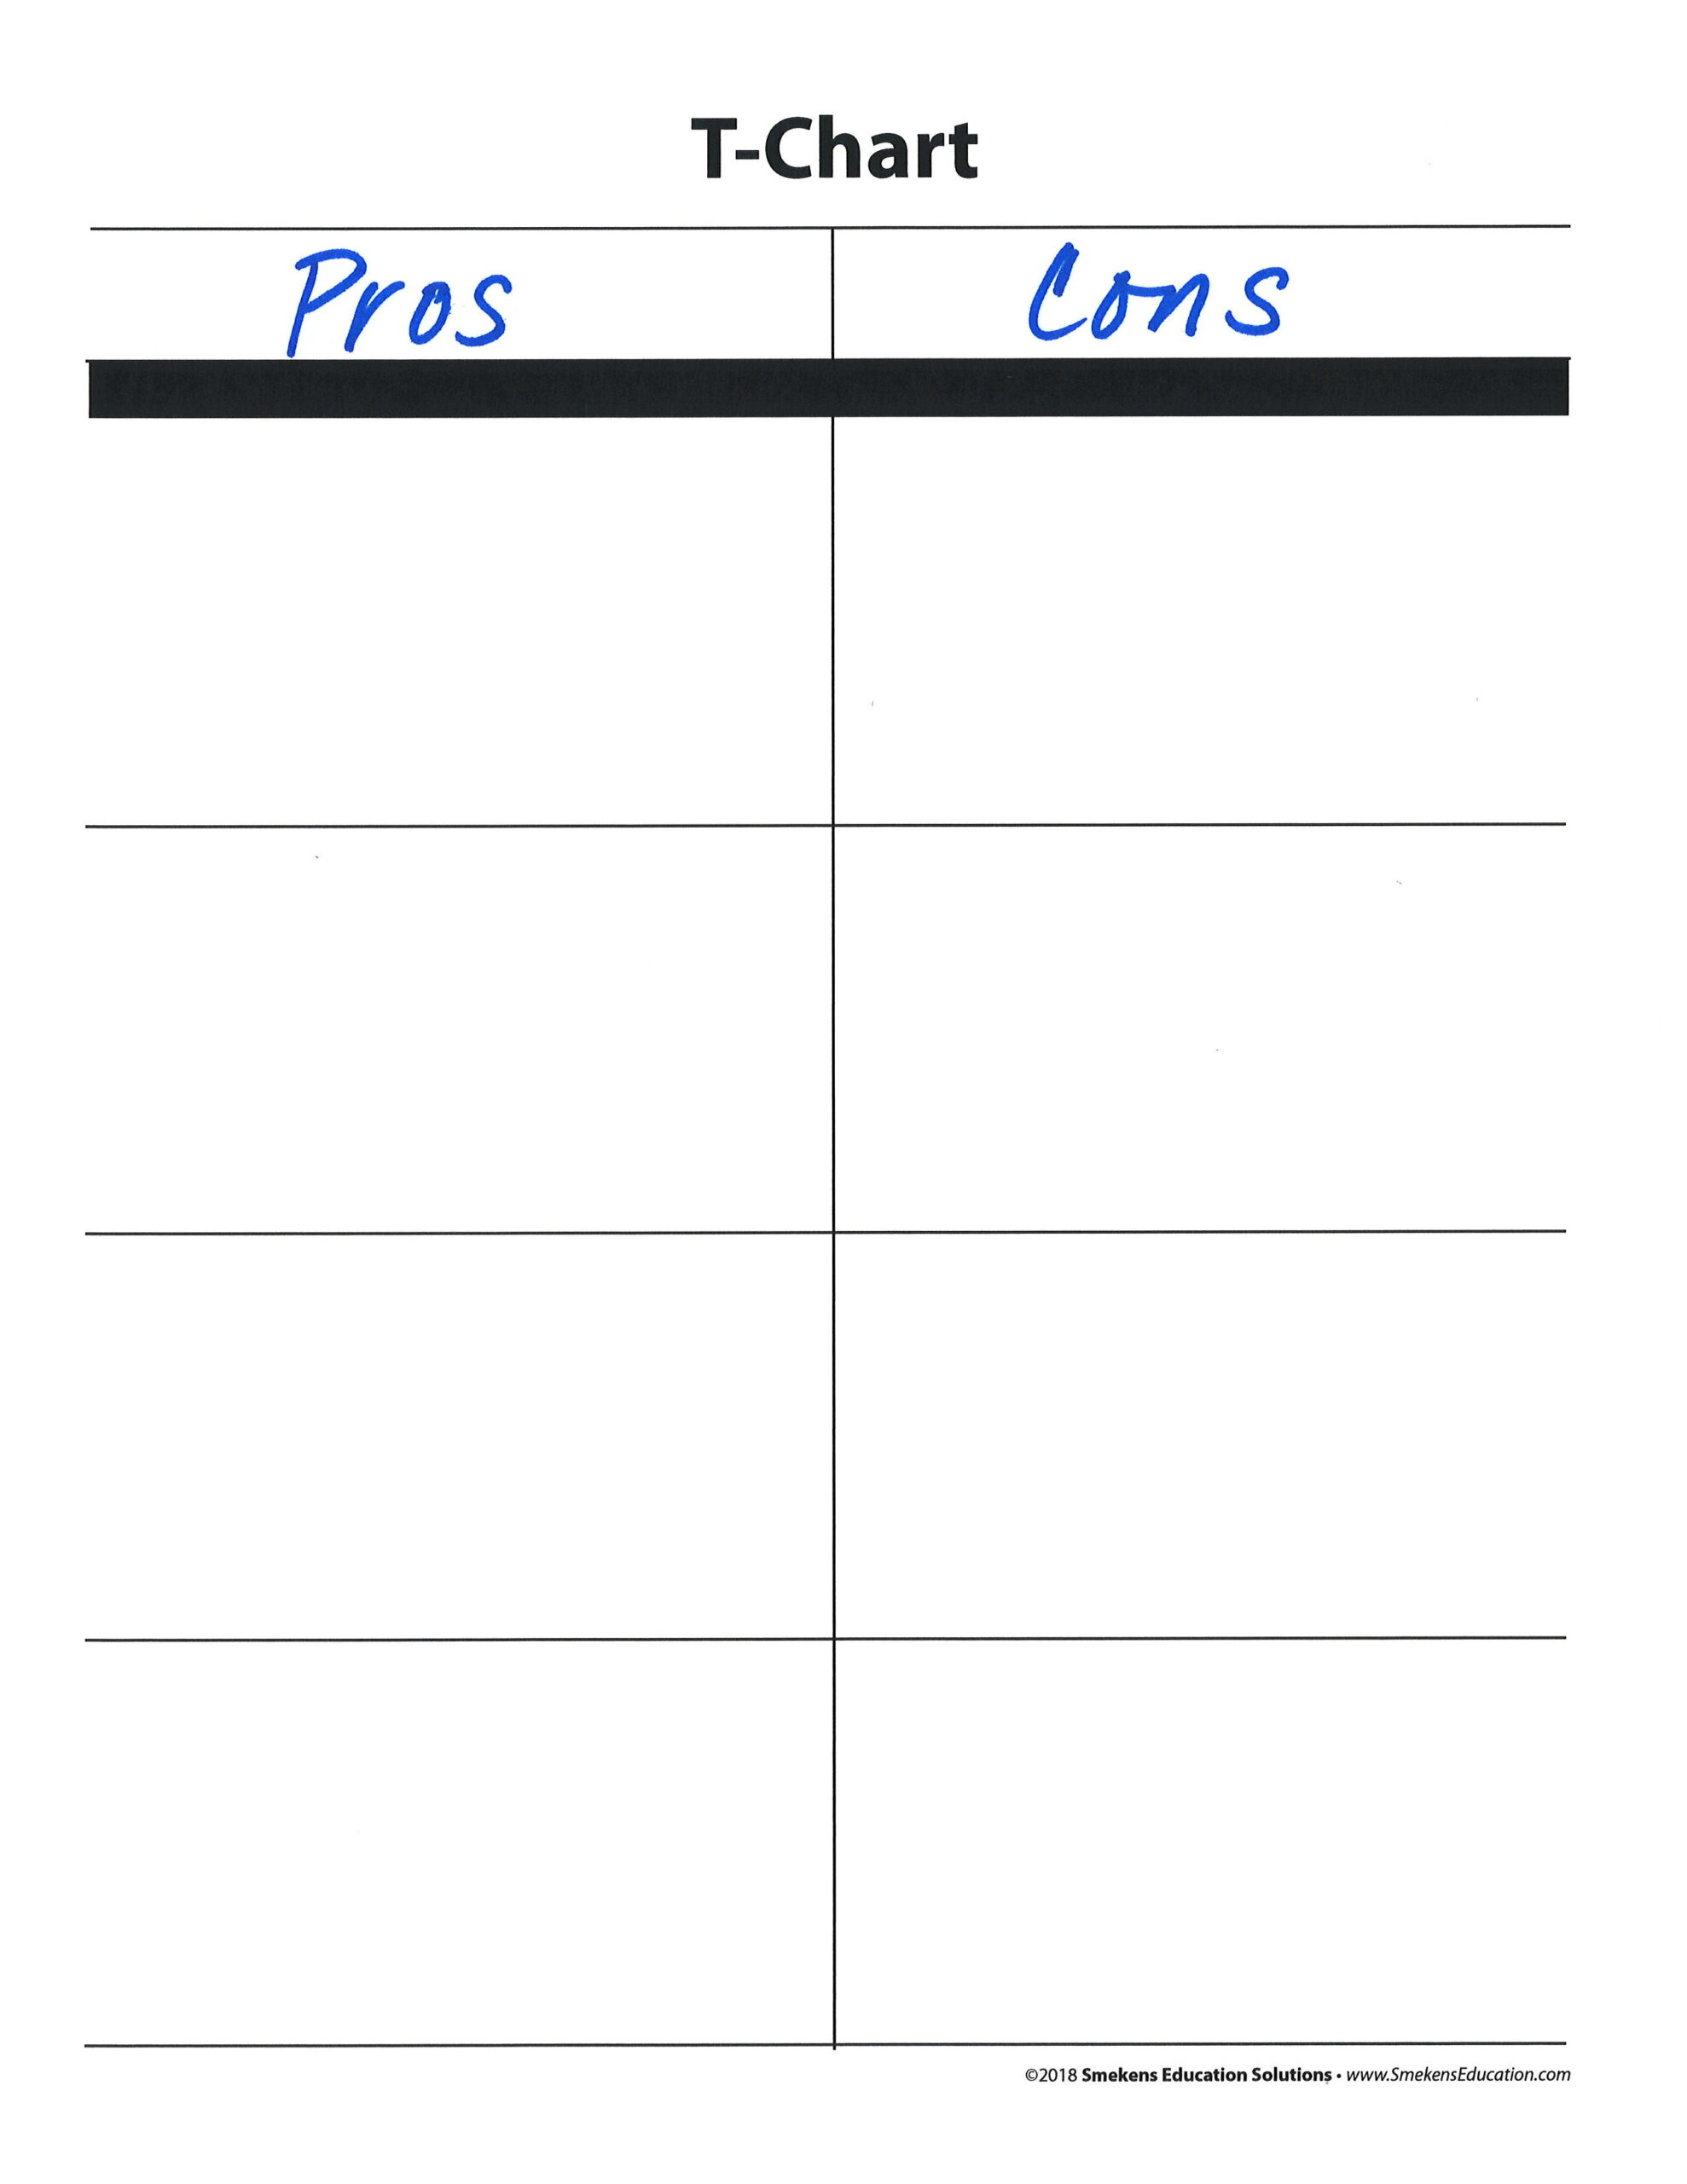 Pros-Cons T-Chart